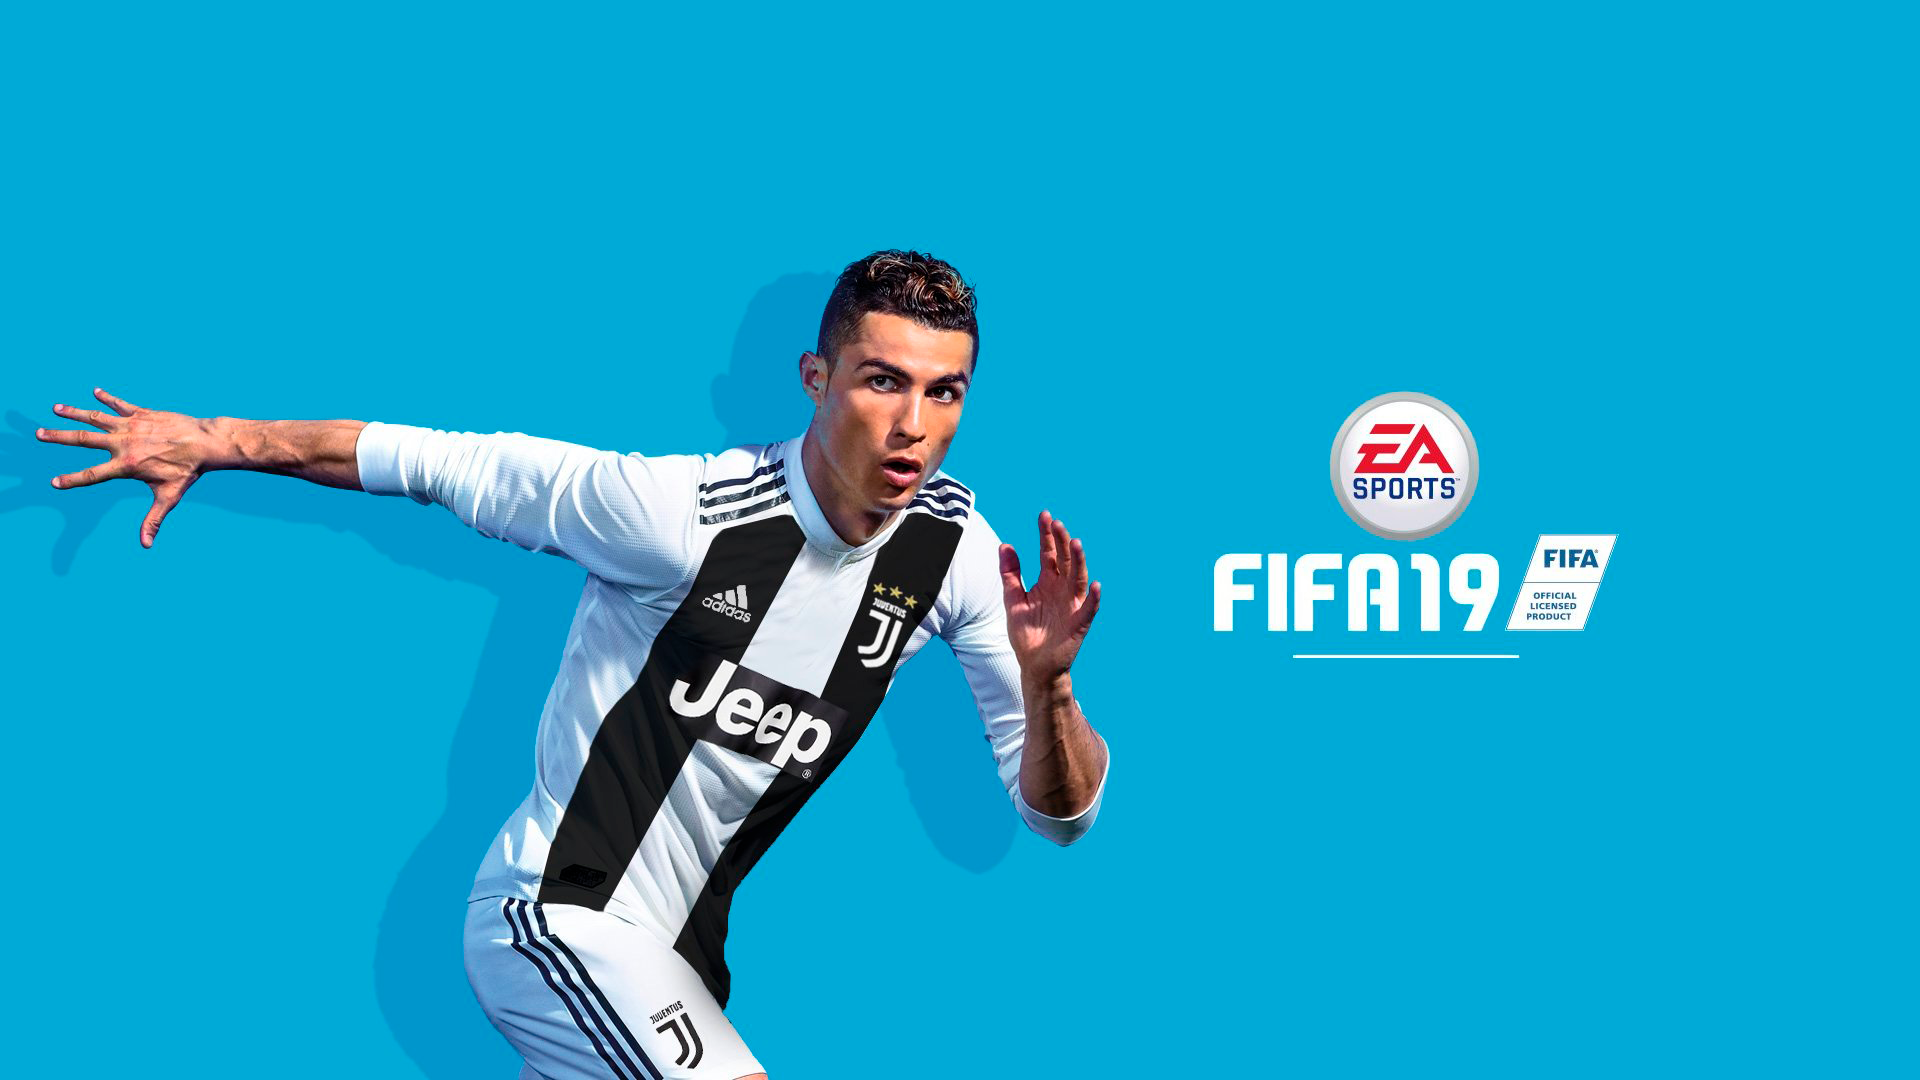 FIFA 19 Update Version 1 09 Patch Notes For PC PS4 And